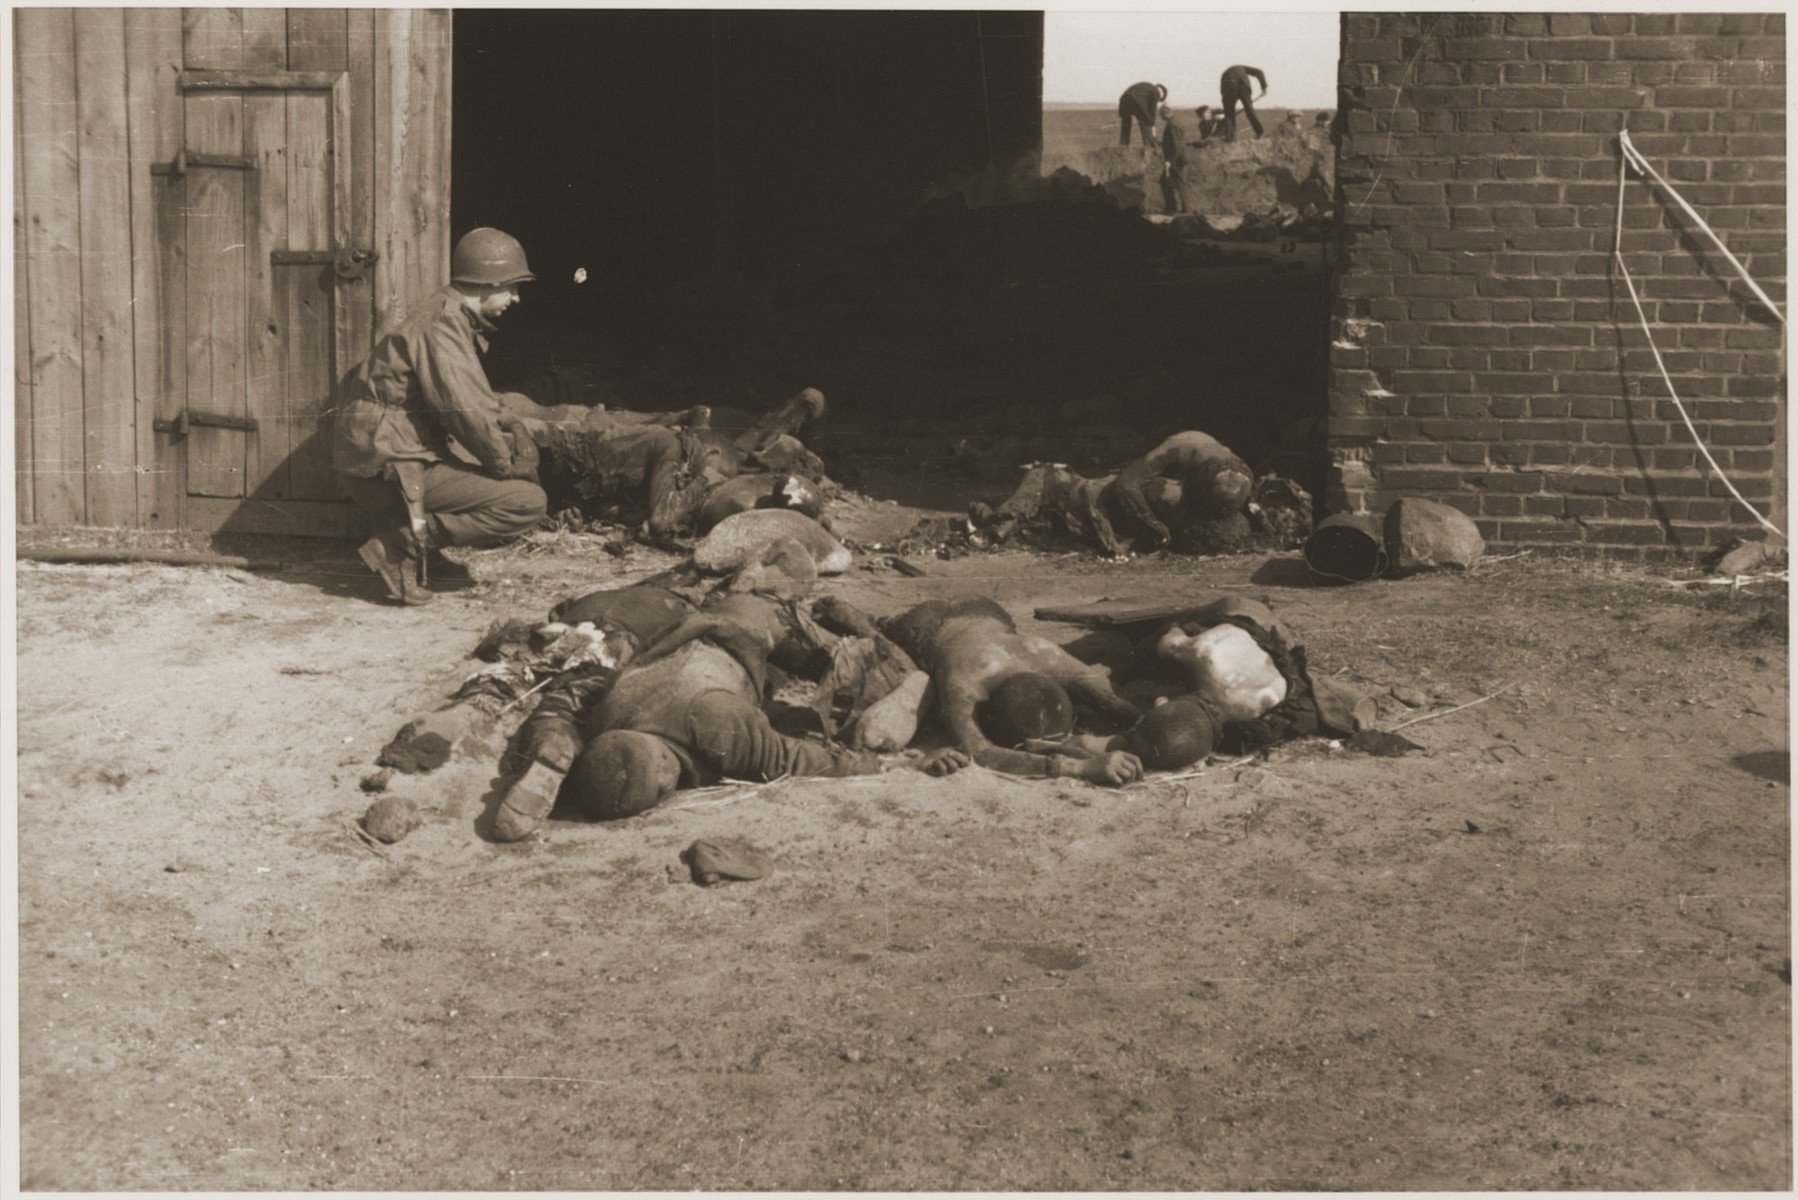 An American soldier kneels beside the charred bodies of prisoners who were burned alive inside a barn near Gardelegen.  In the background, German civilians exhume corpses that were buried in a mass grave by the SS before fleeing the site.